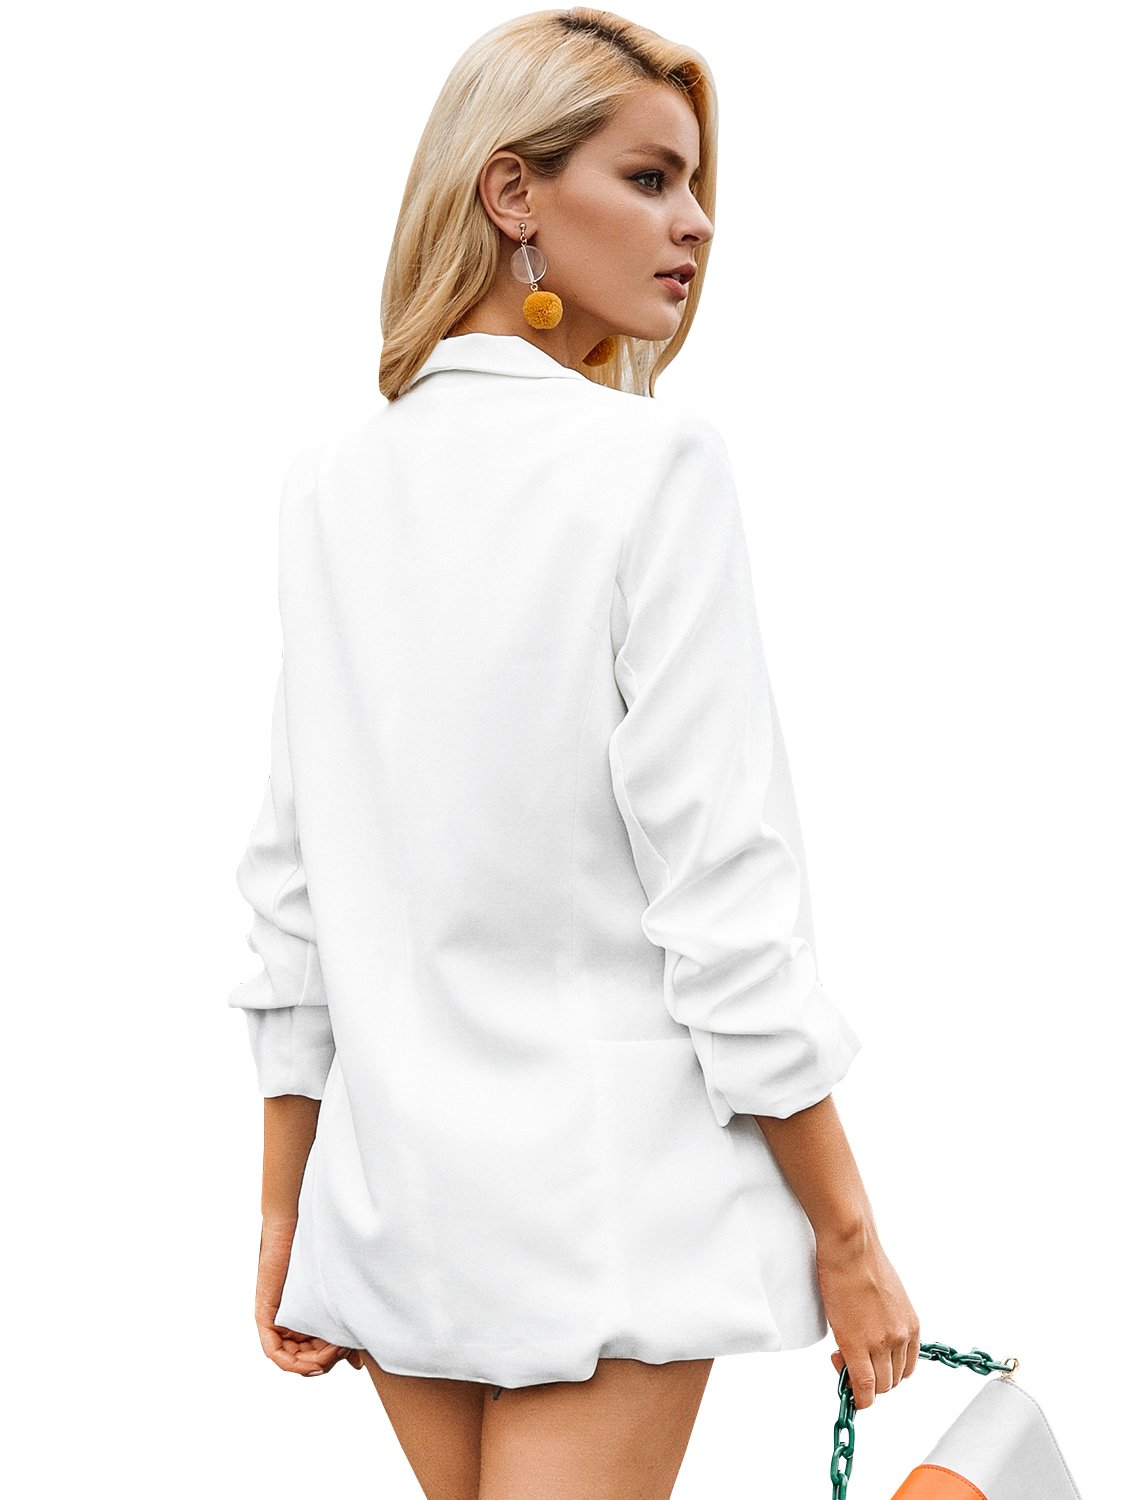 Simplee Women's Fashion 3/4 Ruched Sleeve Open Front Work Office Blazer Jacket by Simplee Apparel (Image #3)